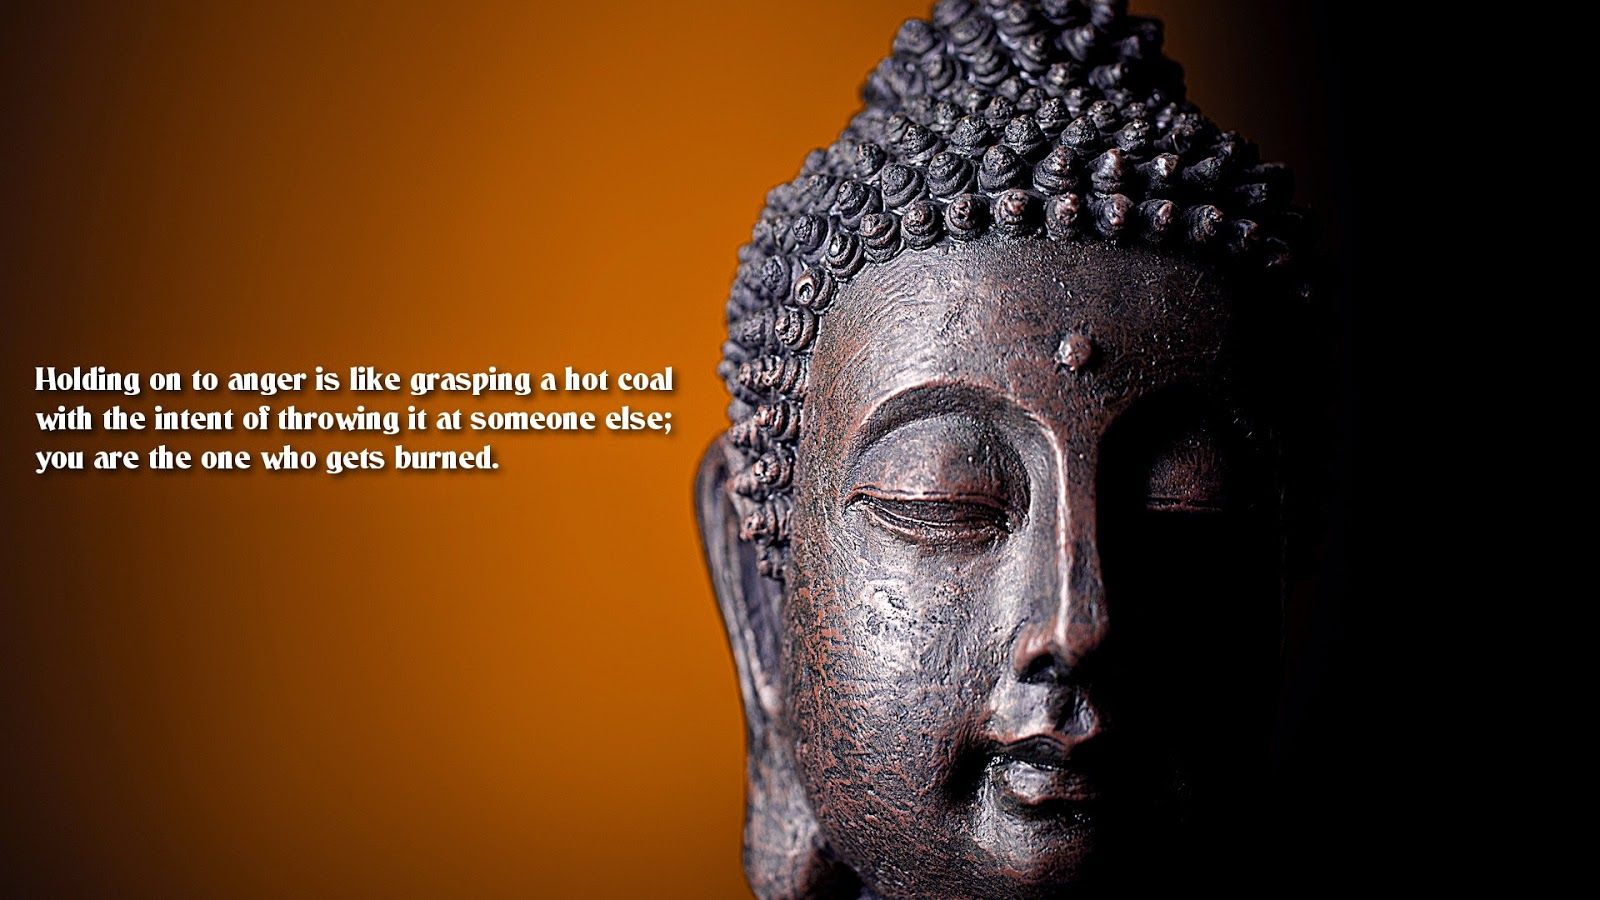 Famous people who are Nichiren Buddhists anger quotes